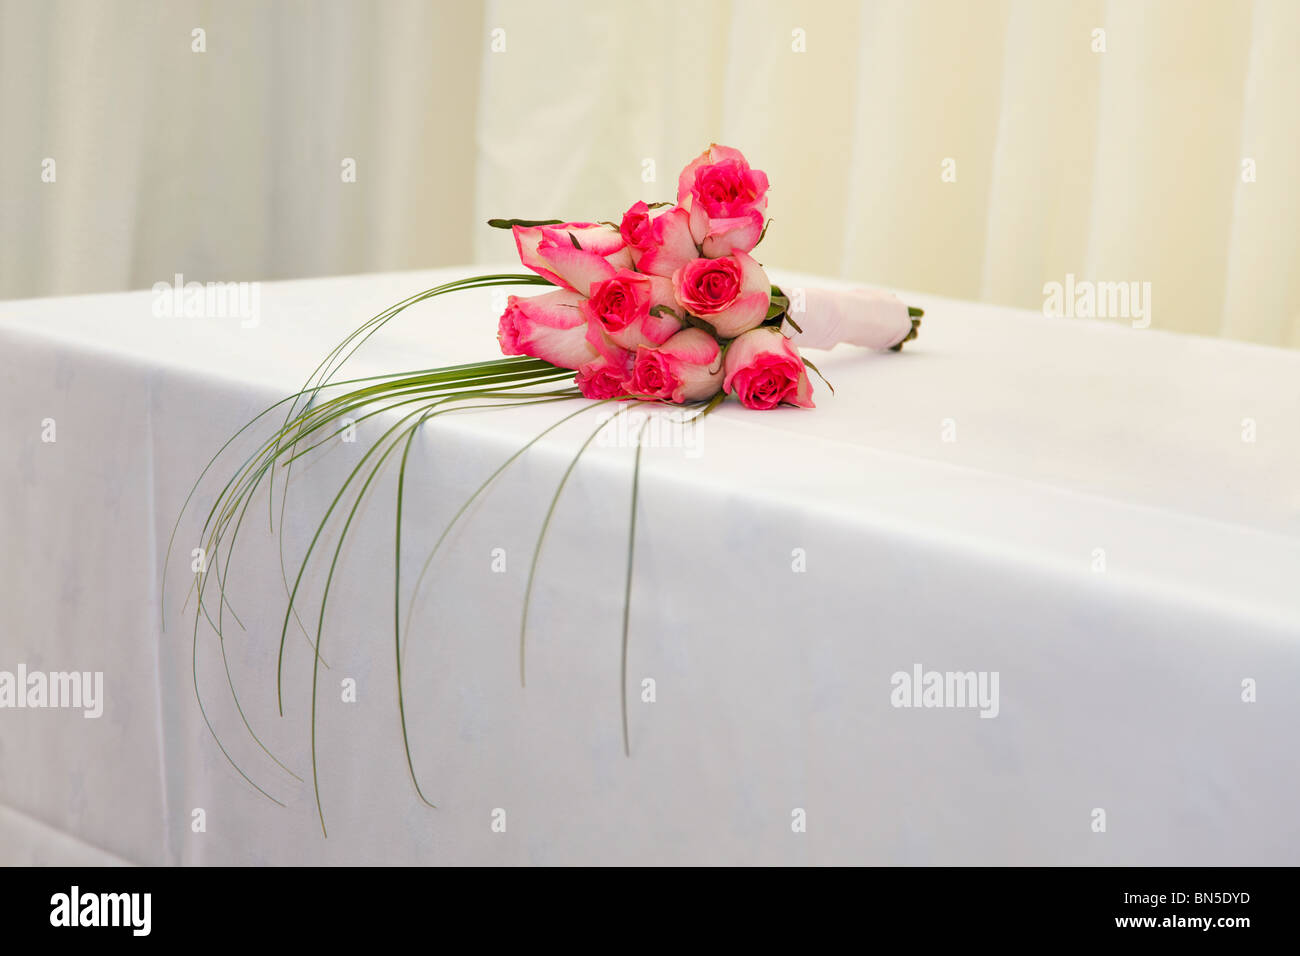 A wedding bouquet of pink roses on a white table with a marquee background. - Stock Image